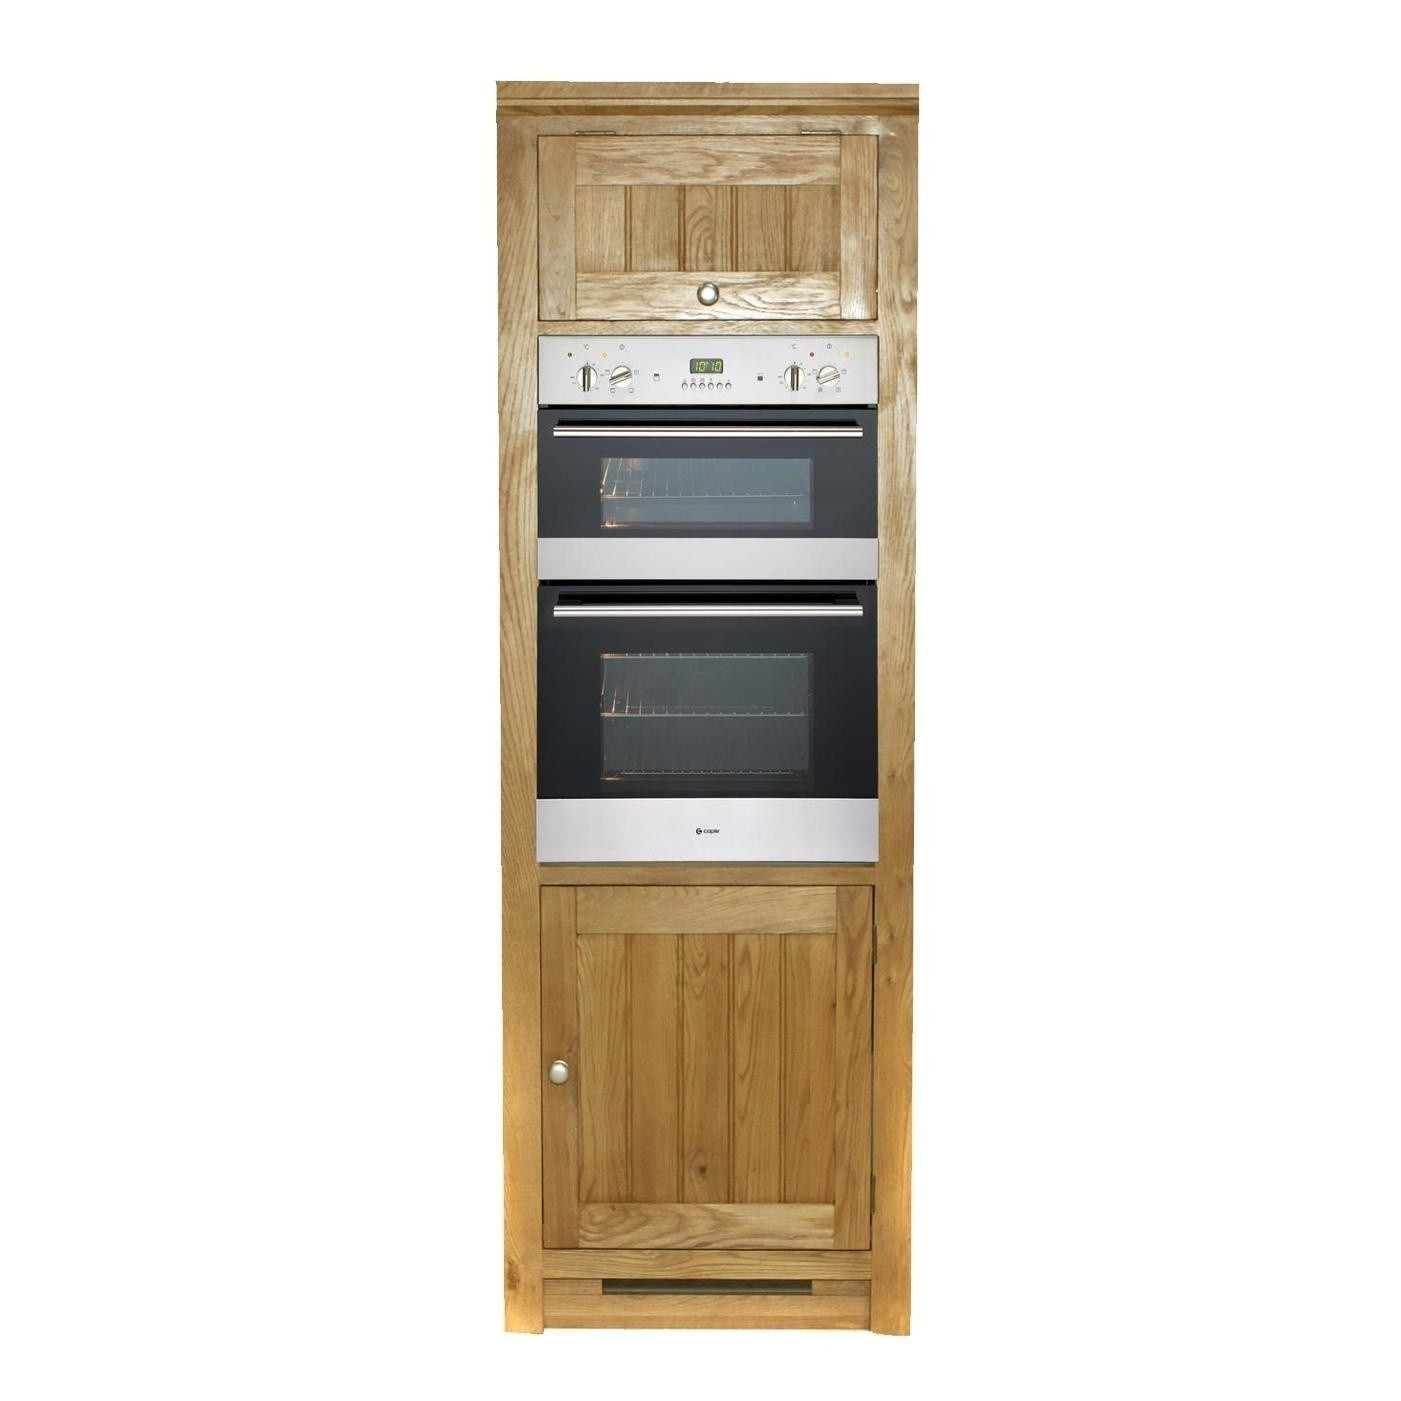 Tall Double Oven Unit